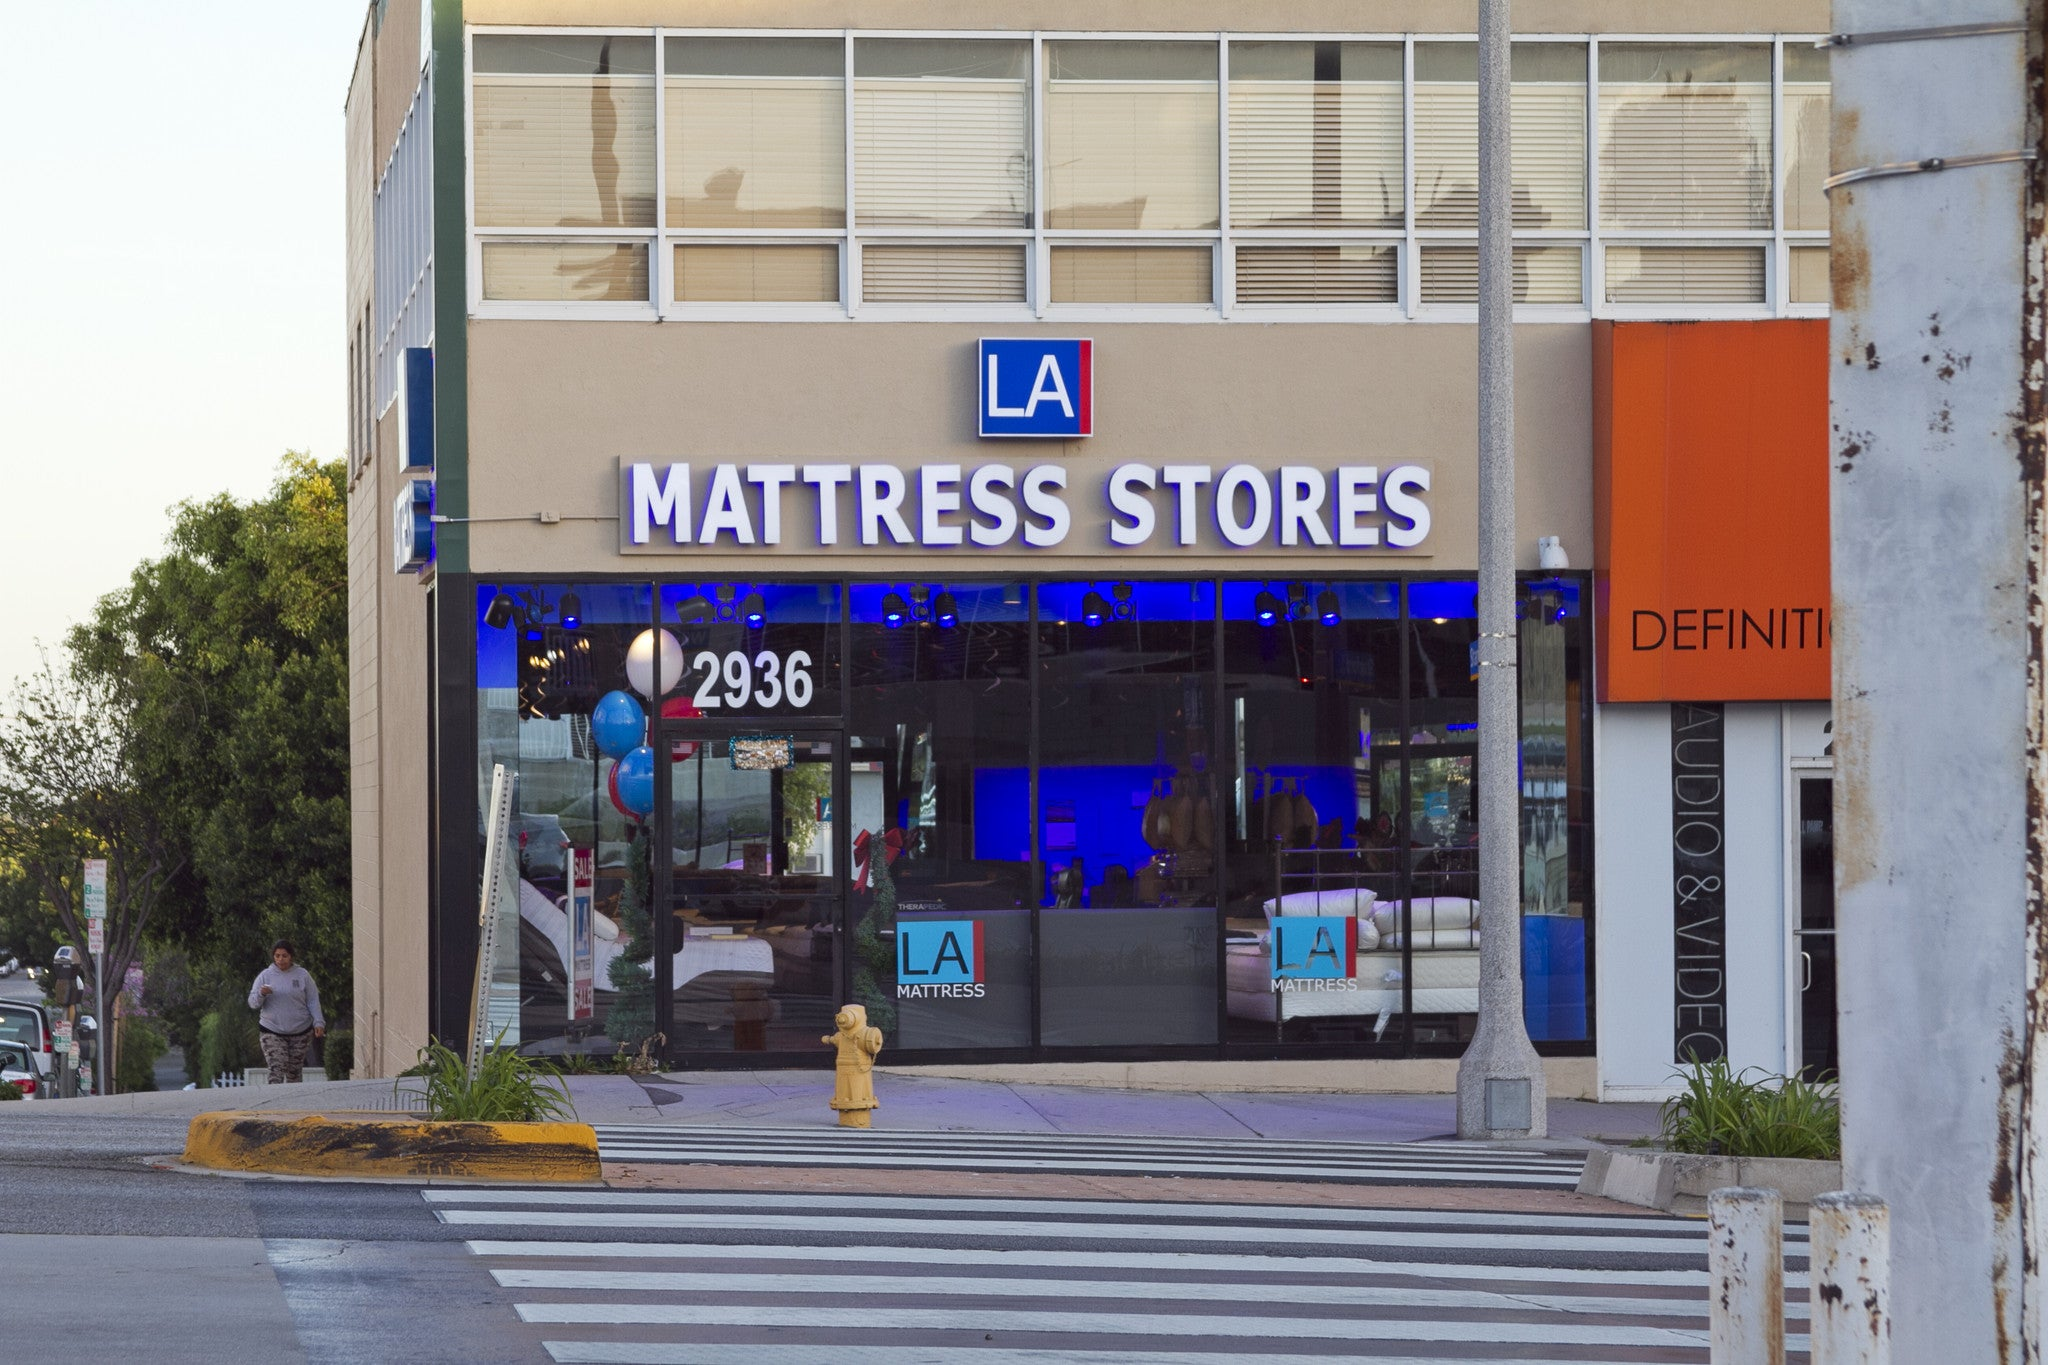 Best Mattress Stores In Santa Monica LA